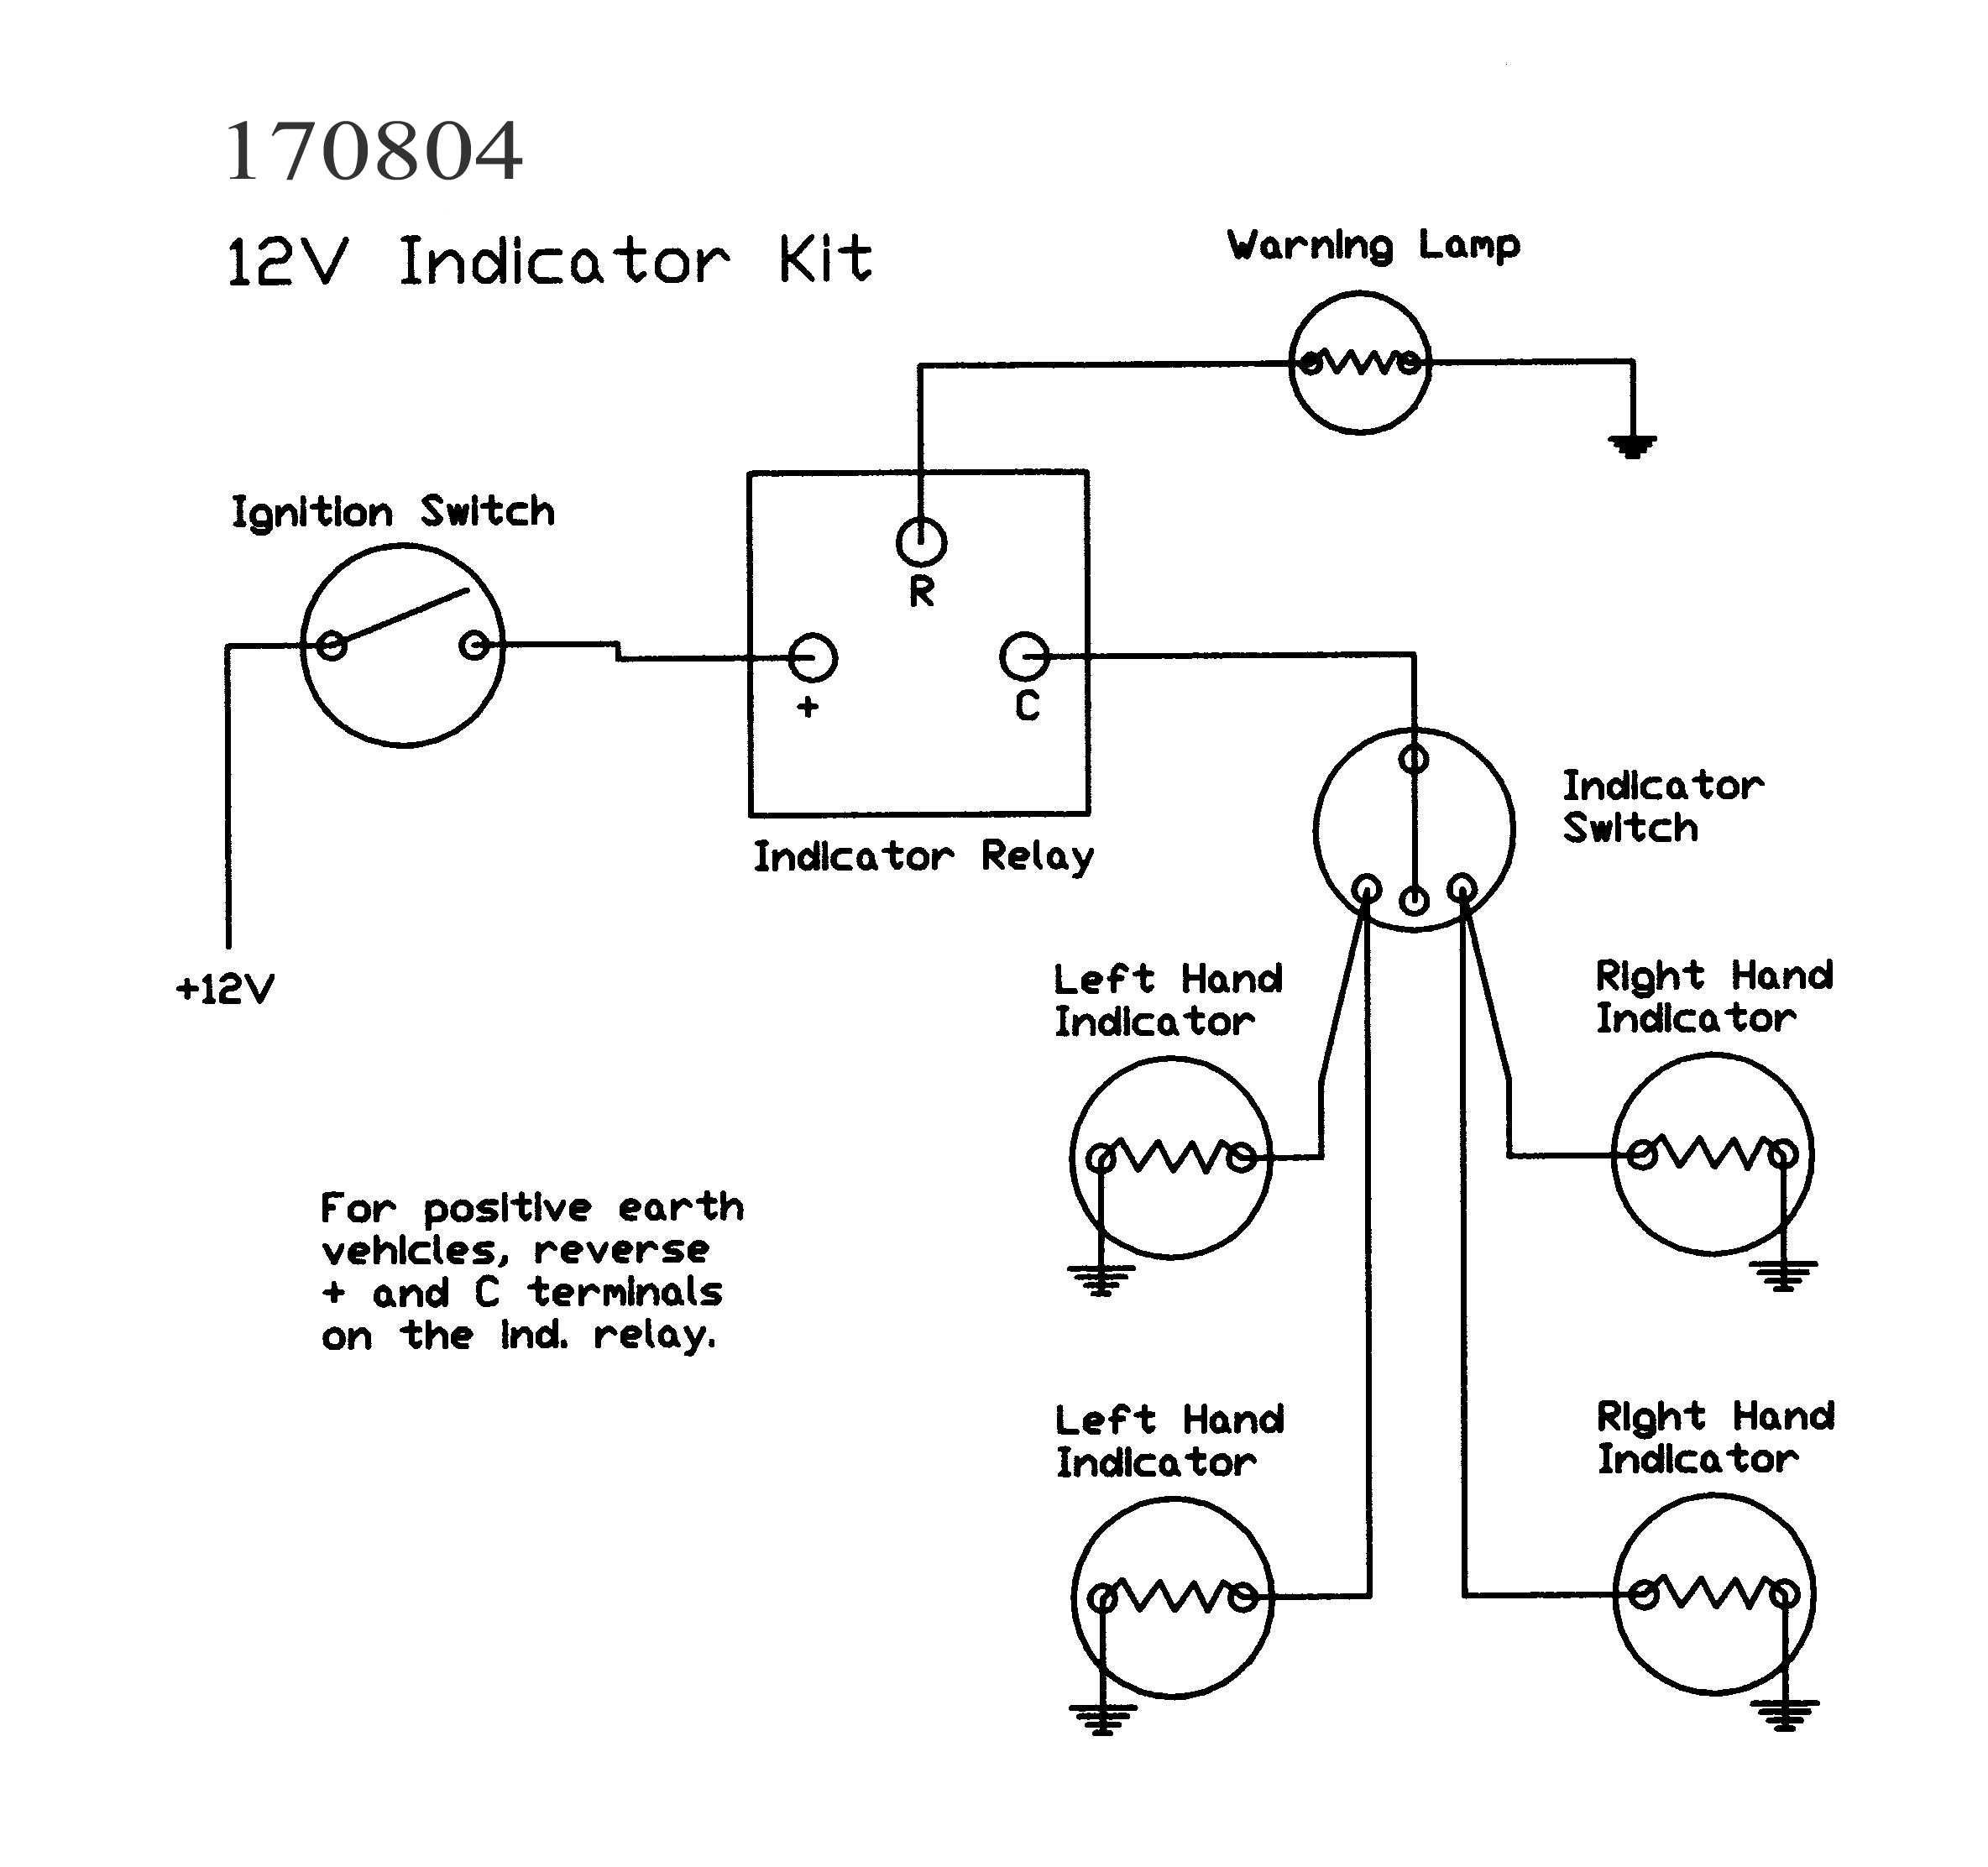 170804_(12v)_schematic indicator kits (without lamps) simple indicator wiring diagram at gsmx.co